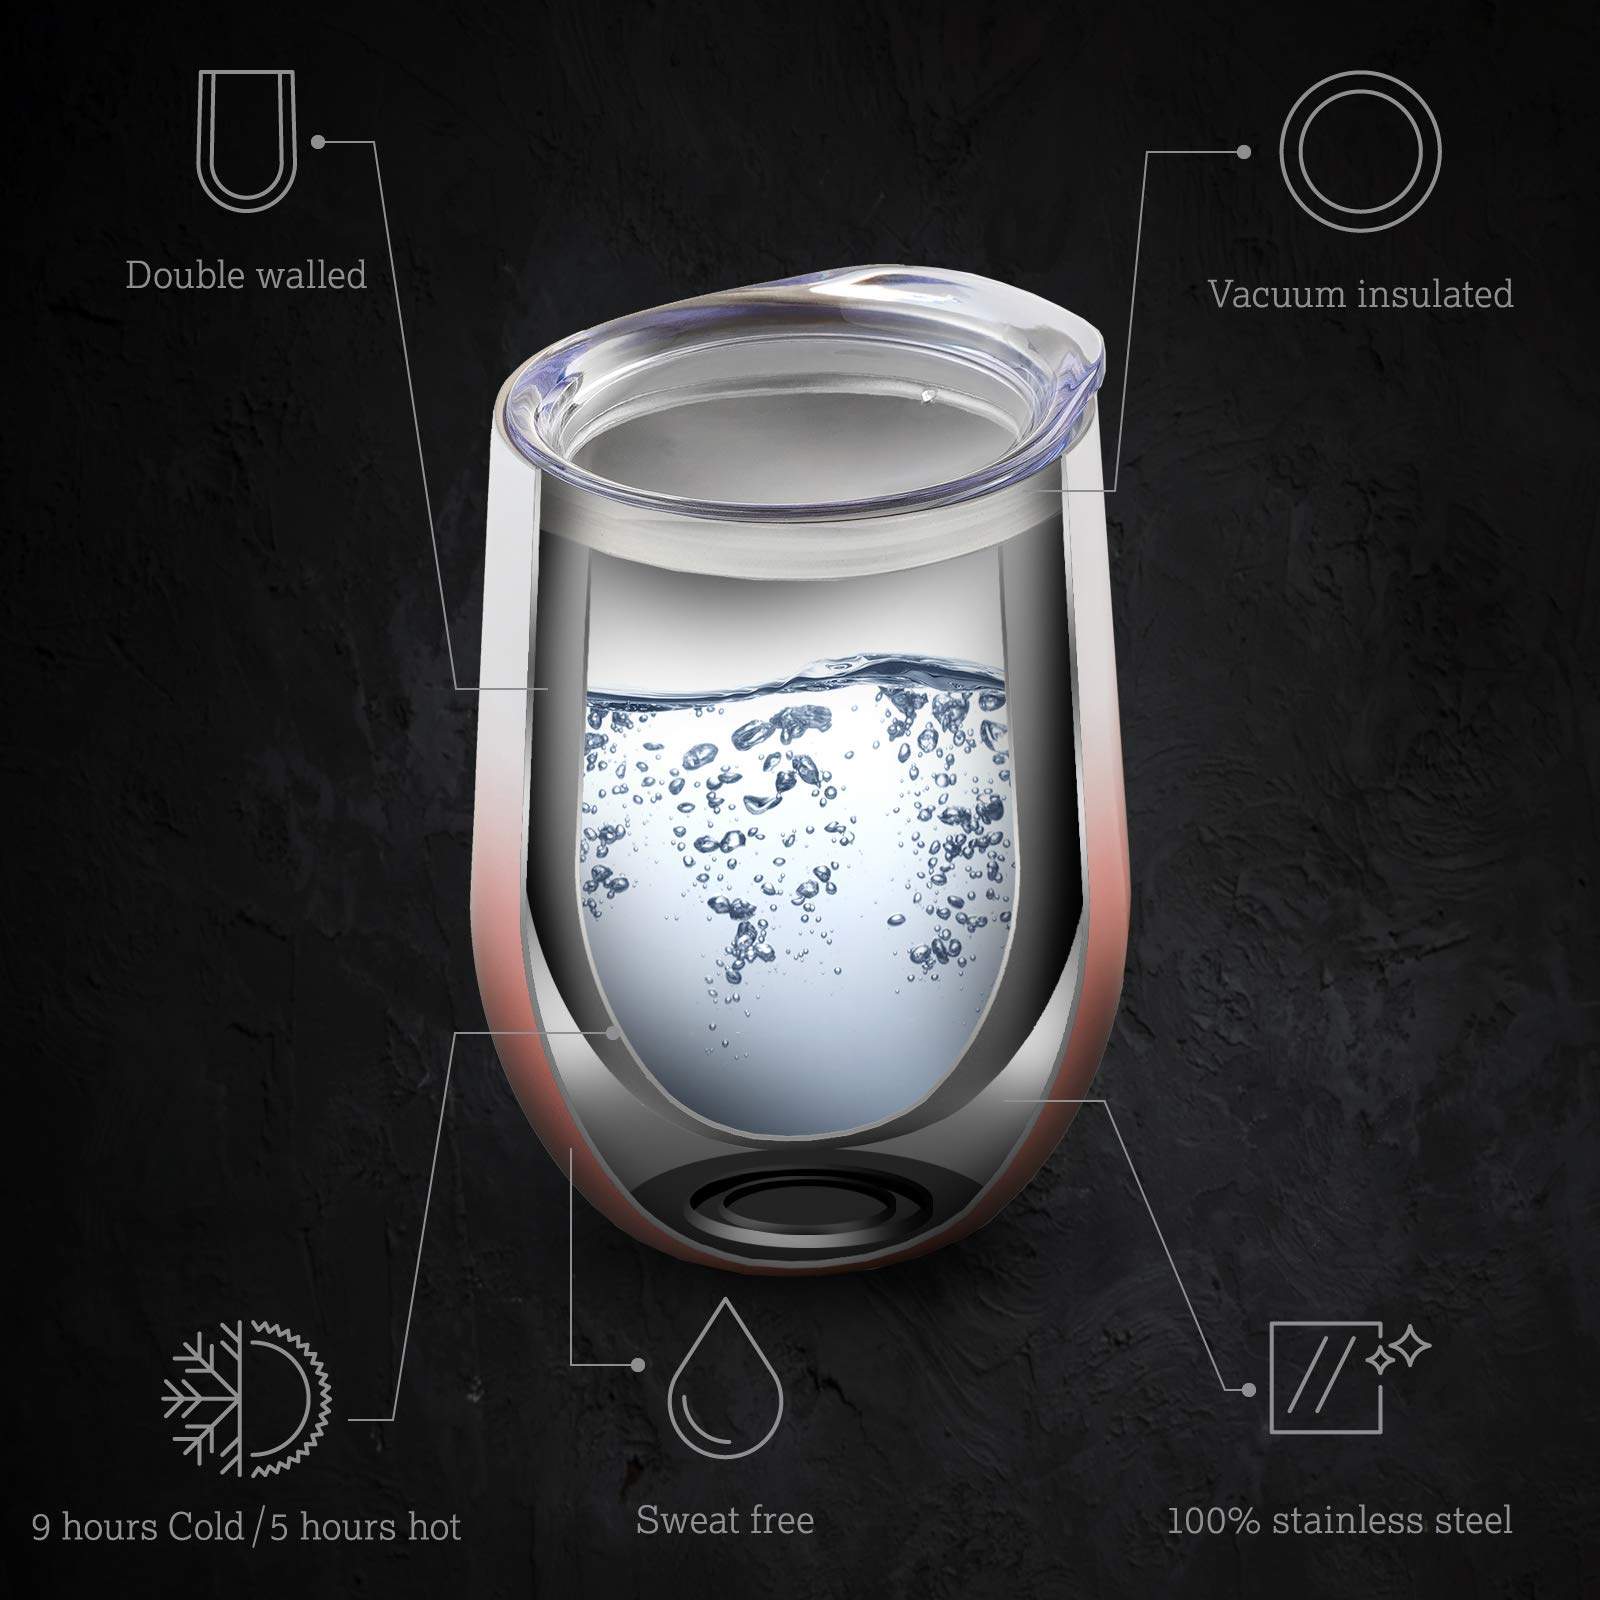 Wine Tumbler 12 oz Double-insulated Stemless Glass, 2 Sets Stainless Steel Tumblers Cup with Lids for Wine, Coffee, Drinks, Champagne, Cocktails by Your Happy Day (Image #5)